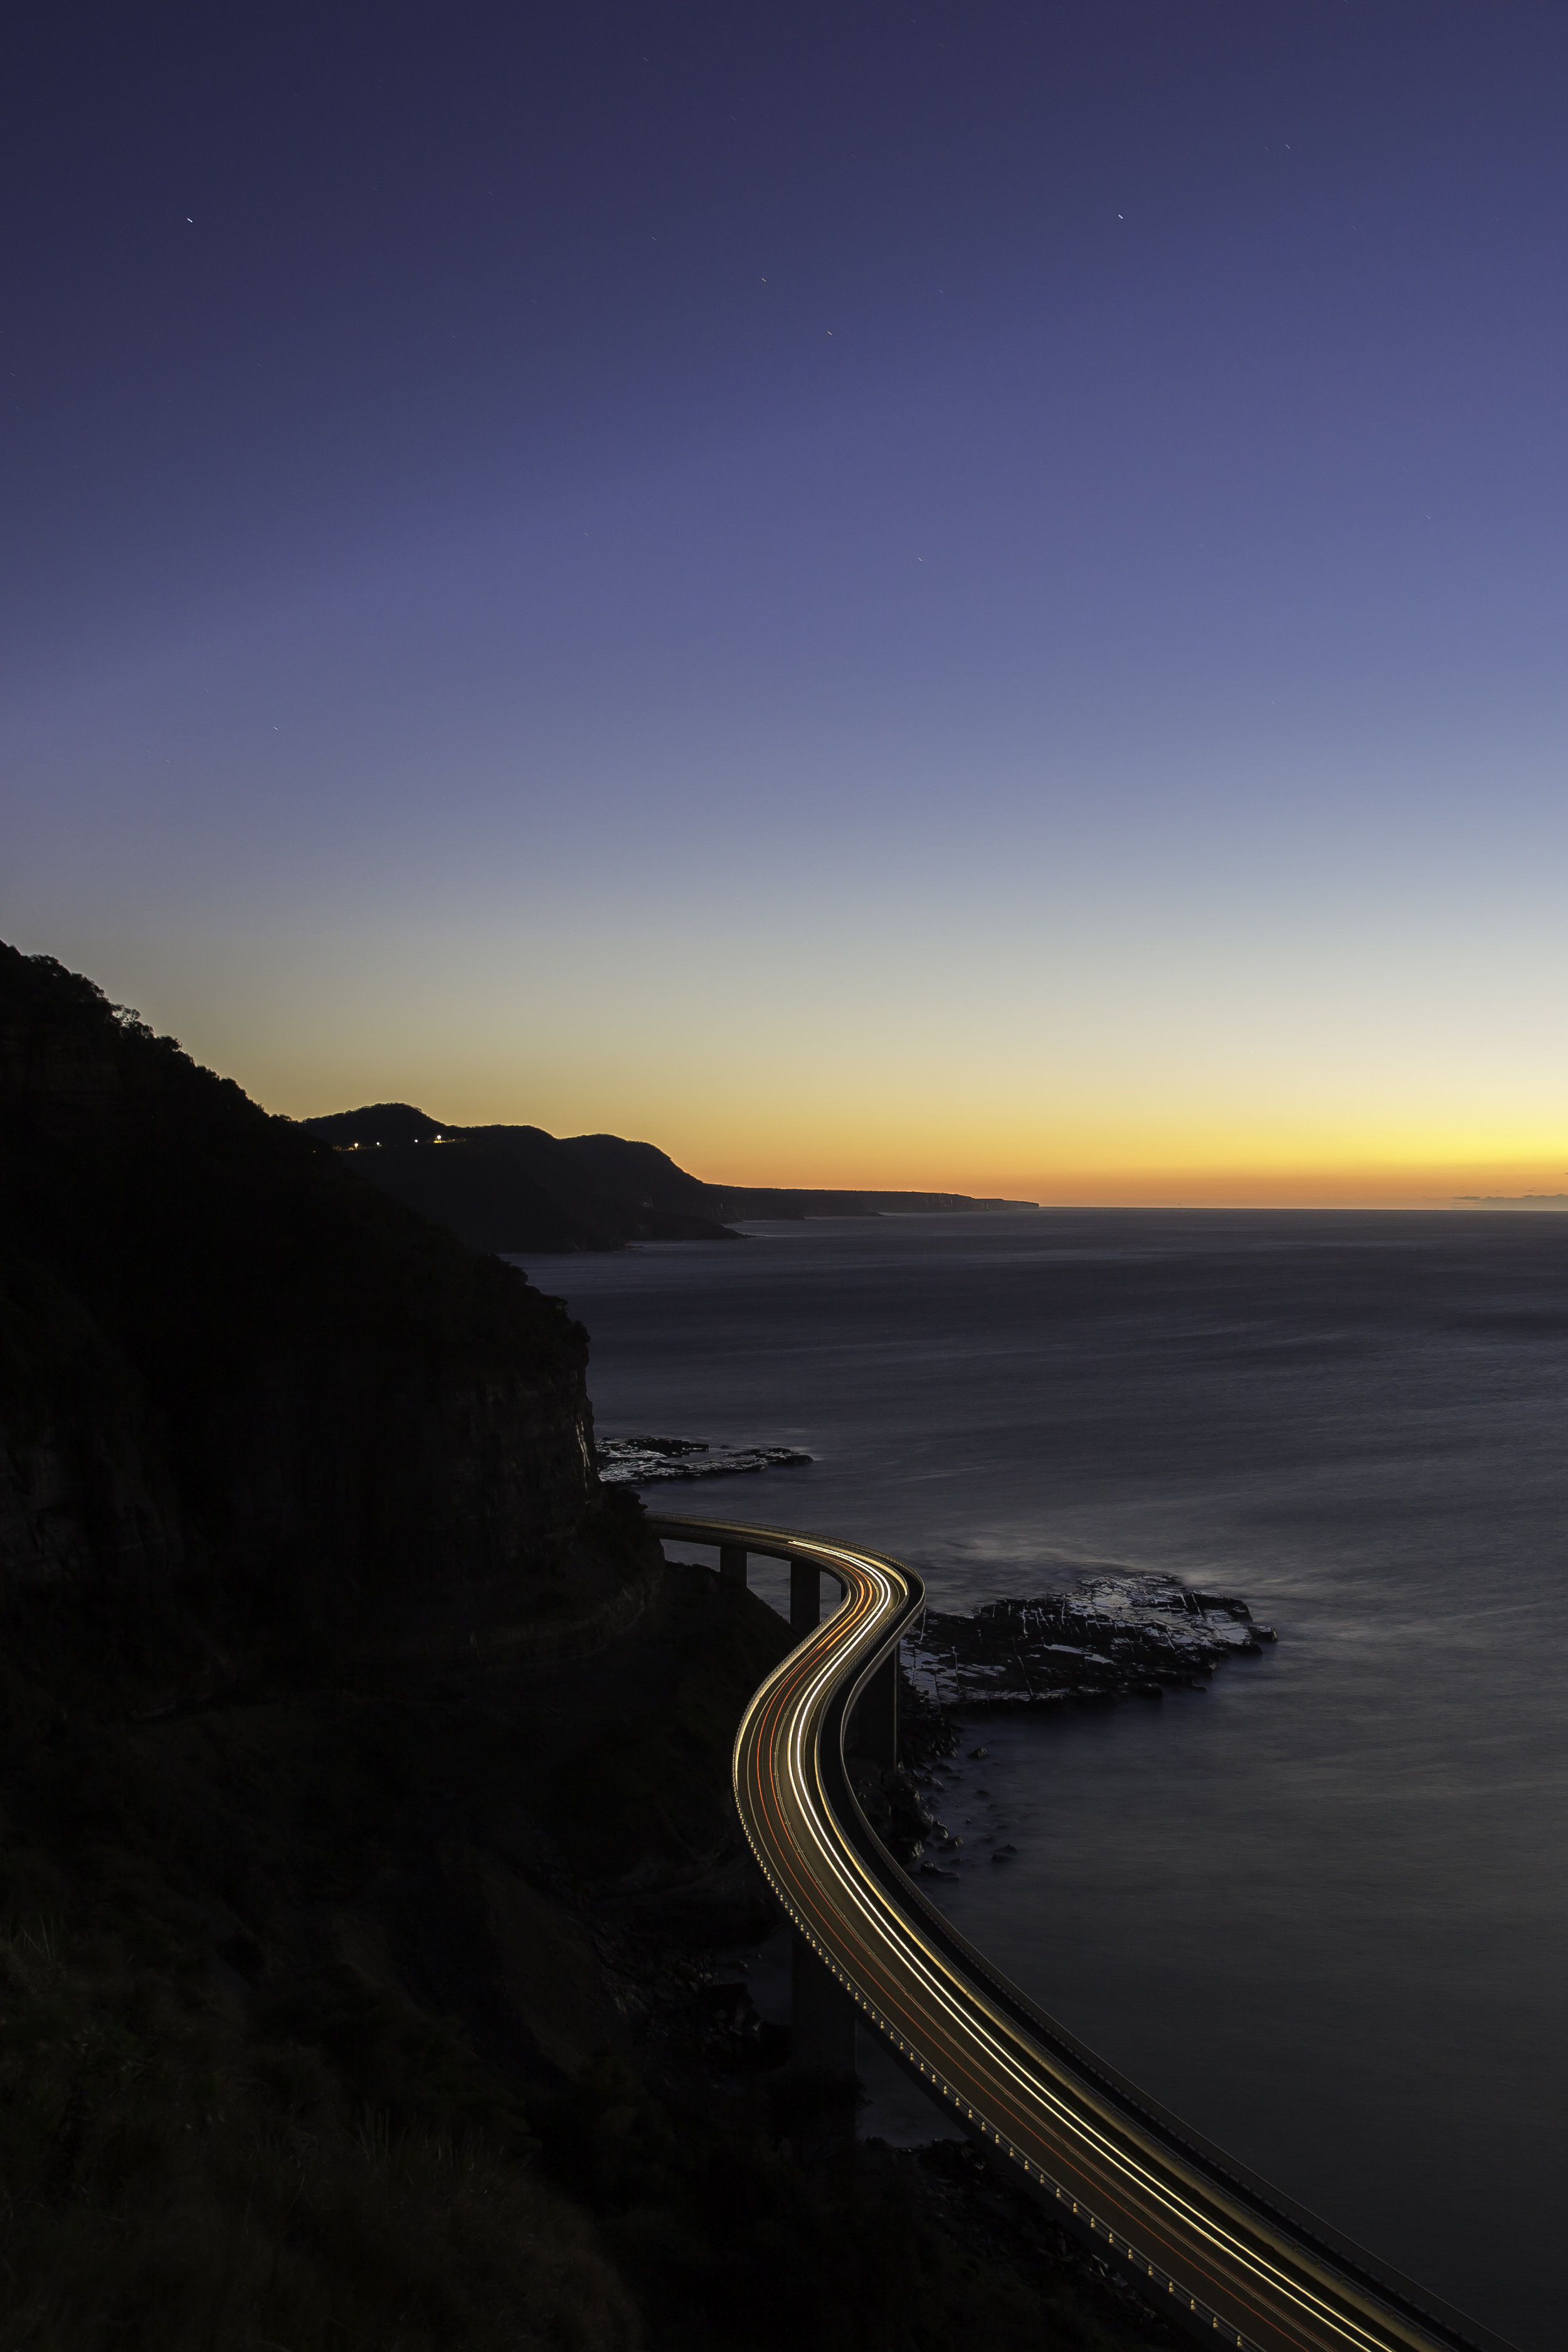 My favourite shot of the Sea Cliff Bridge. This was my first ever time taking a long exposure and I was so surprised at how it turned out!